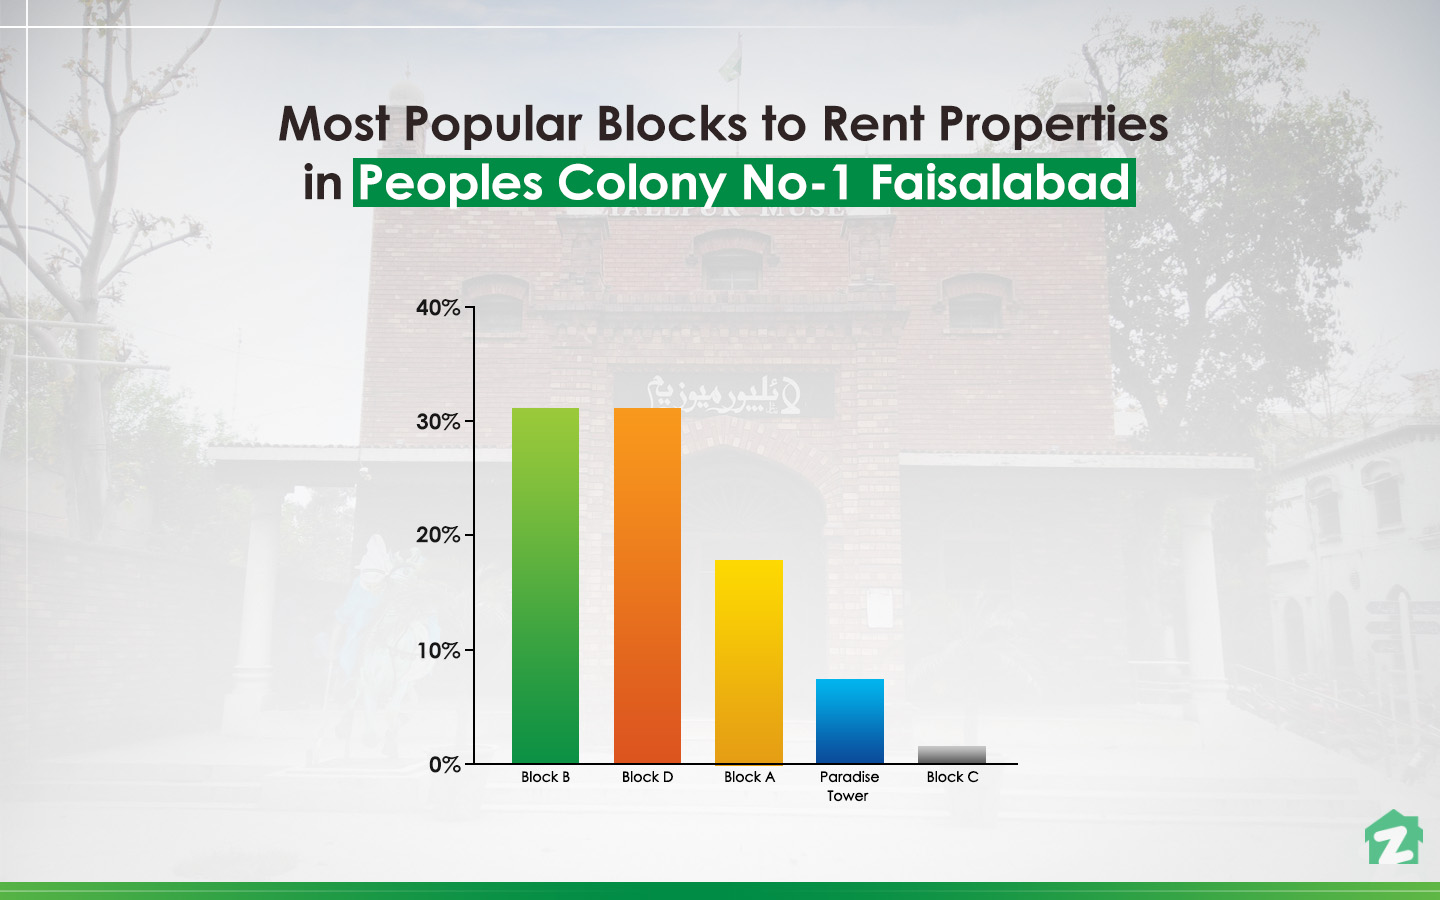 Rental Trends in Peoples Colony No. 1, Faisalabad